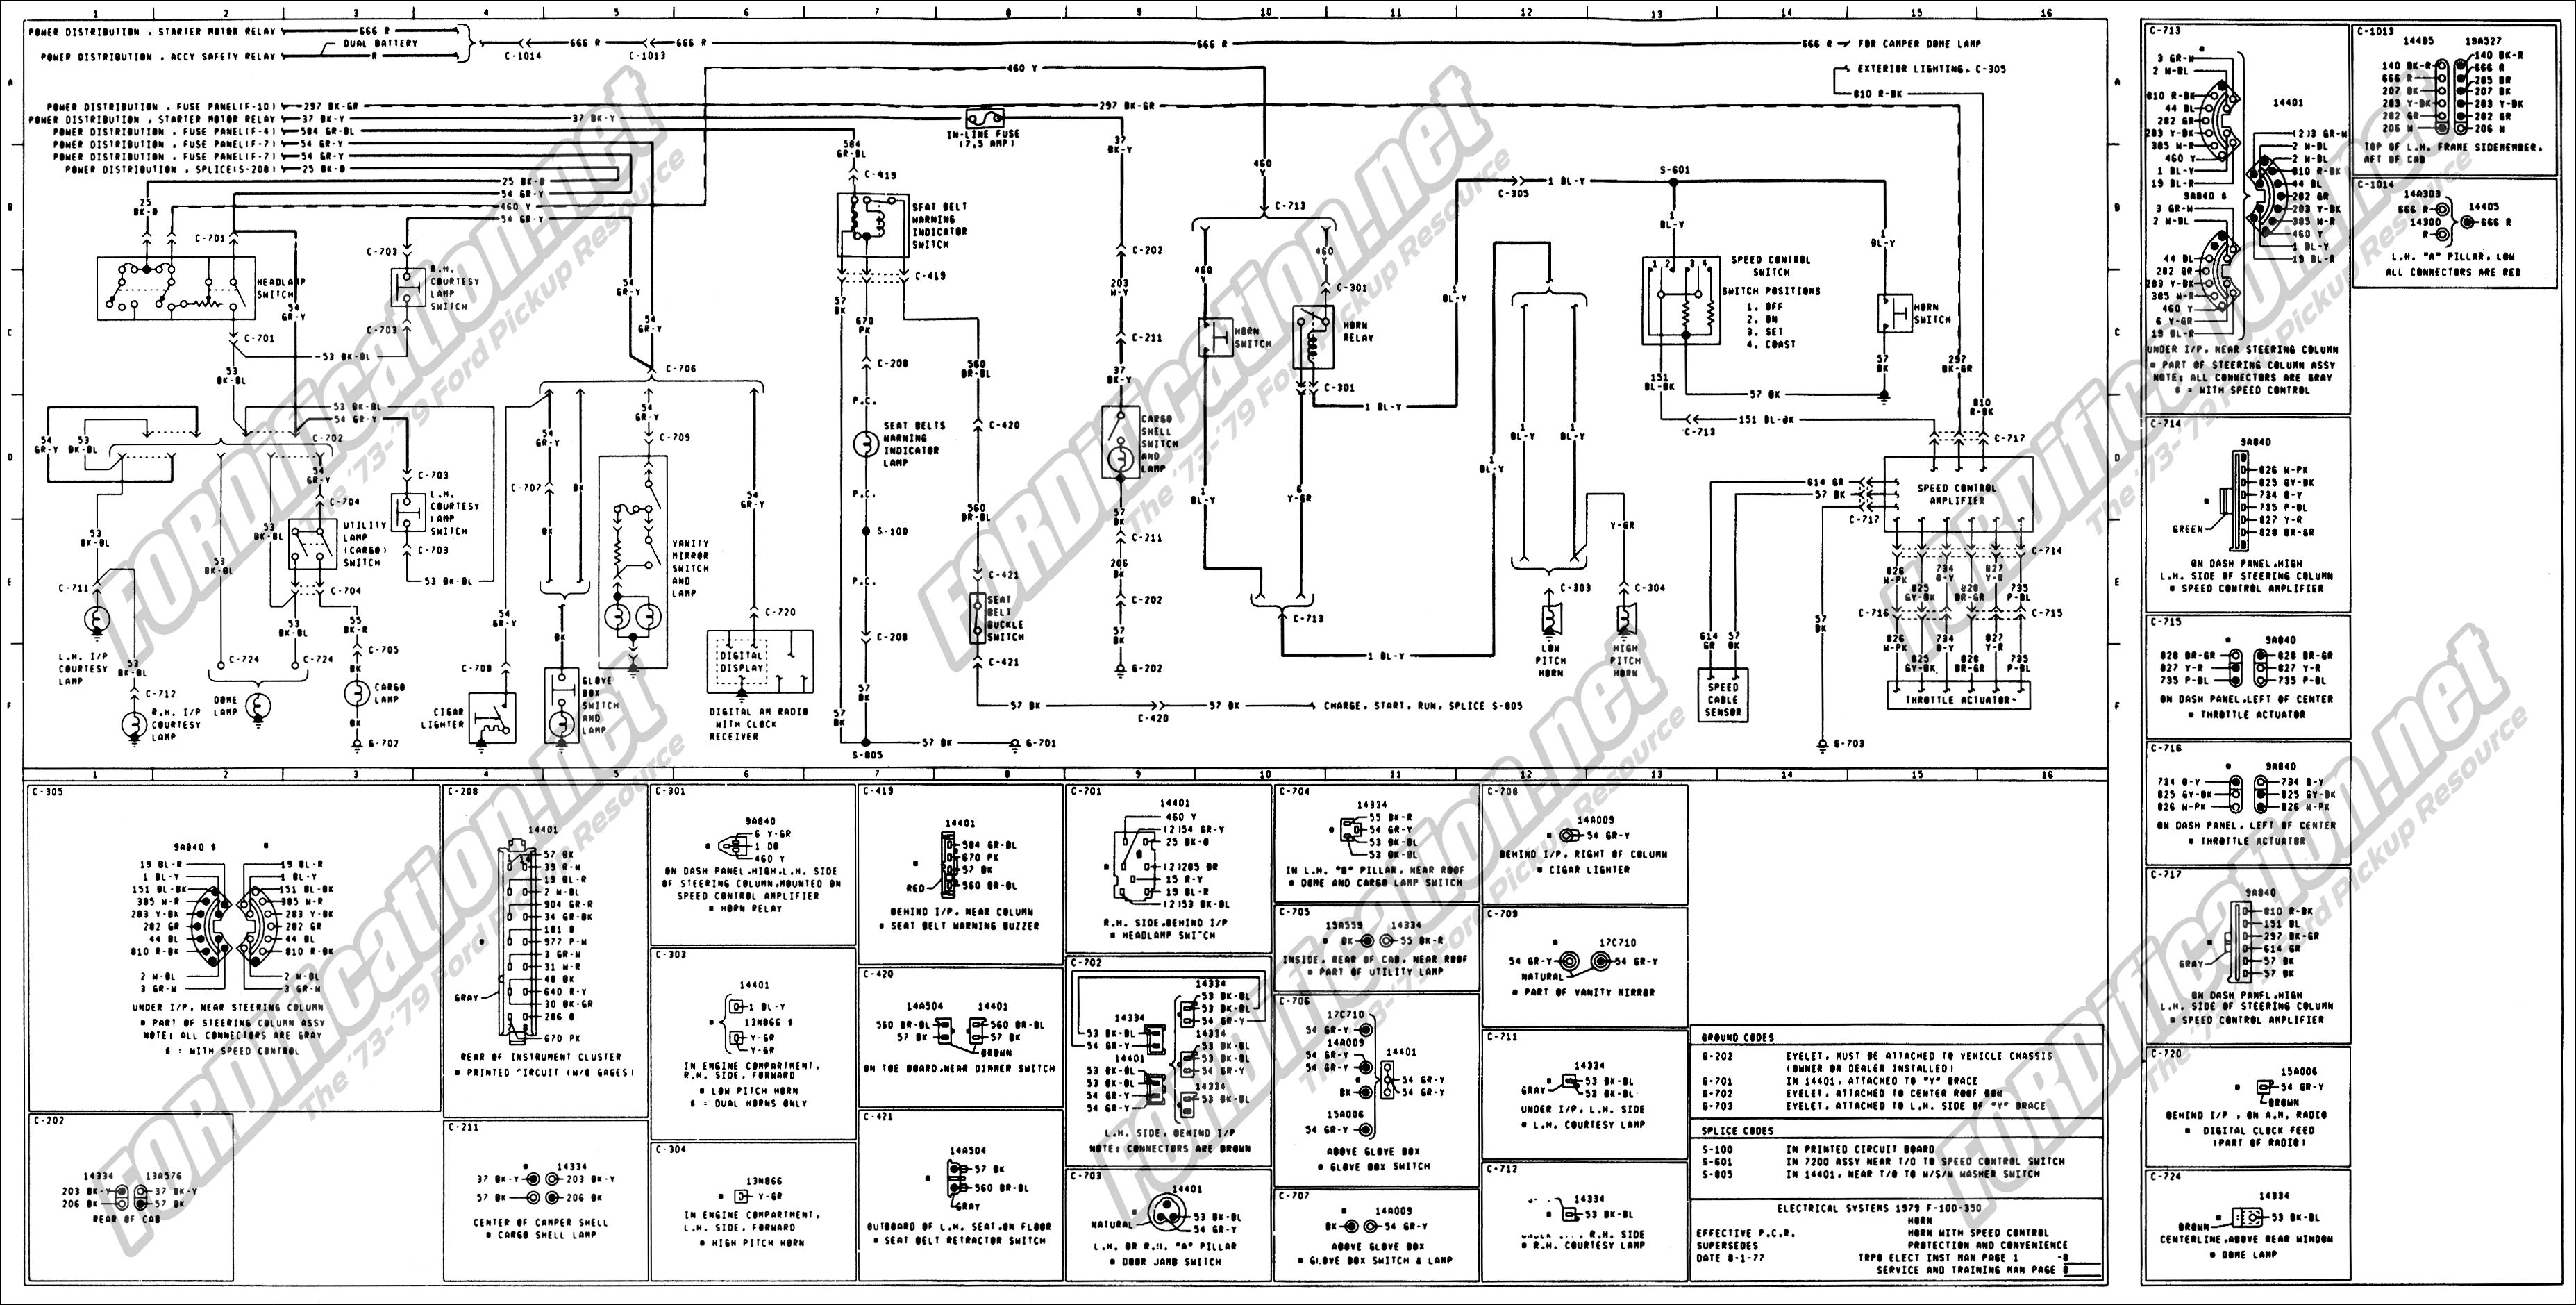 wiring_79master_8of9 1973 1979 ford truck wiring diagrams & schematics fordification net 1978 ford bronco wiring diagram at crackthecode.co